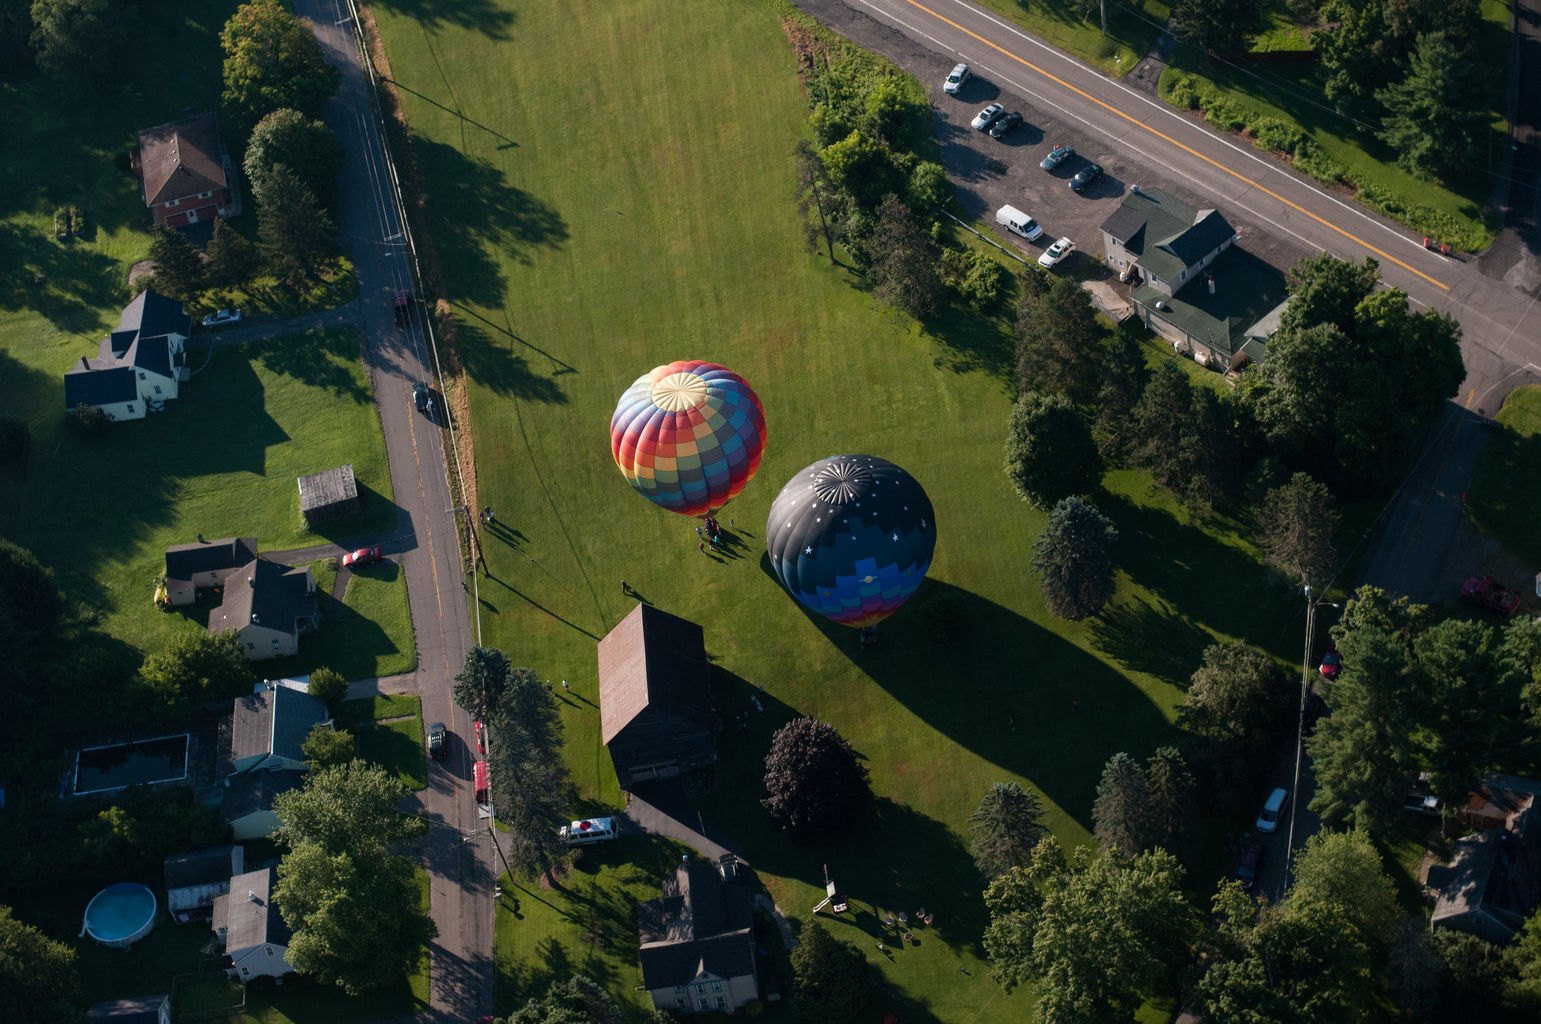 Spiedie Fest & Hot Air Balloon Rally 2015 | Binghamton, NY | July 30 - August 2